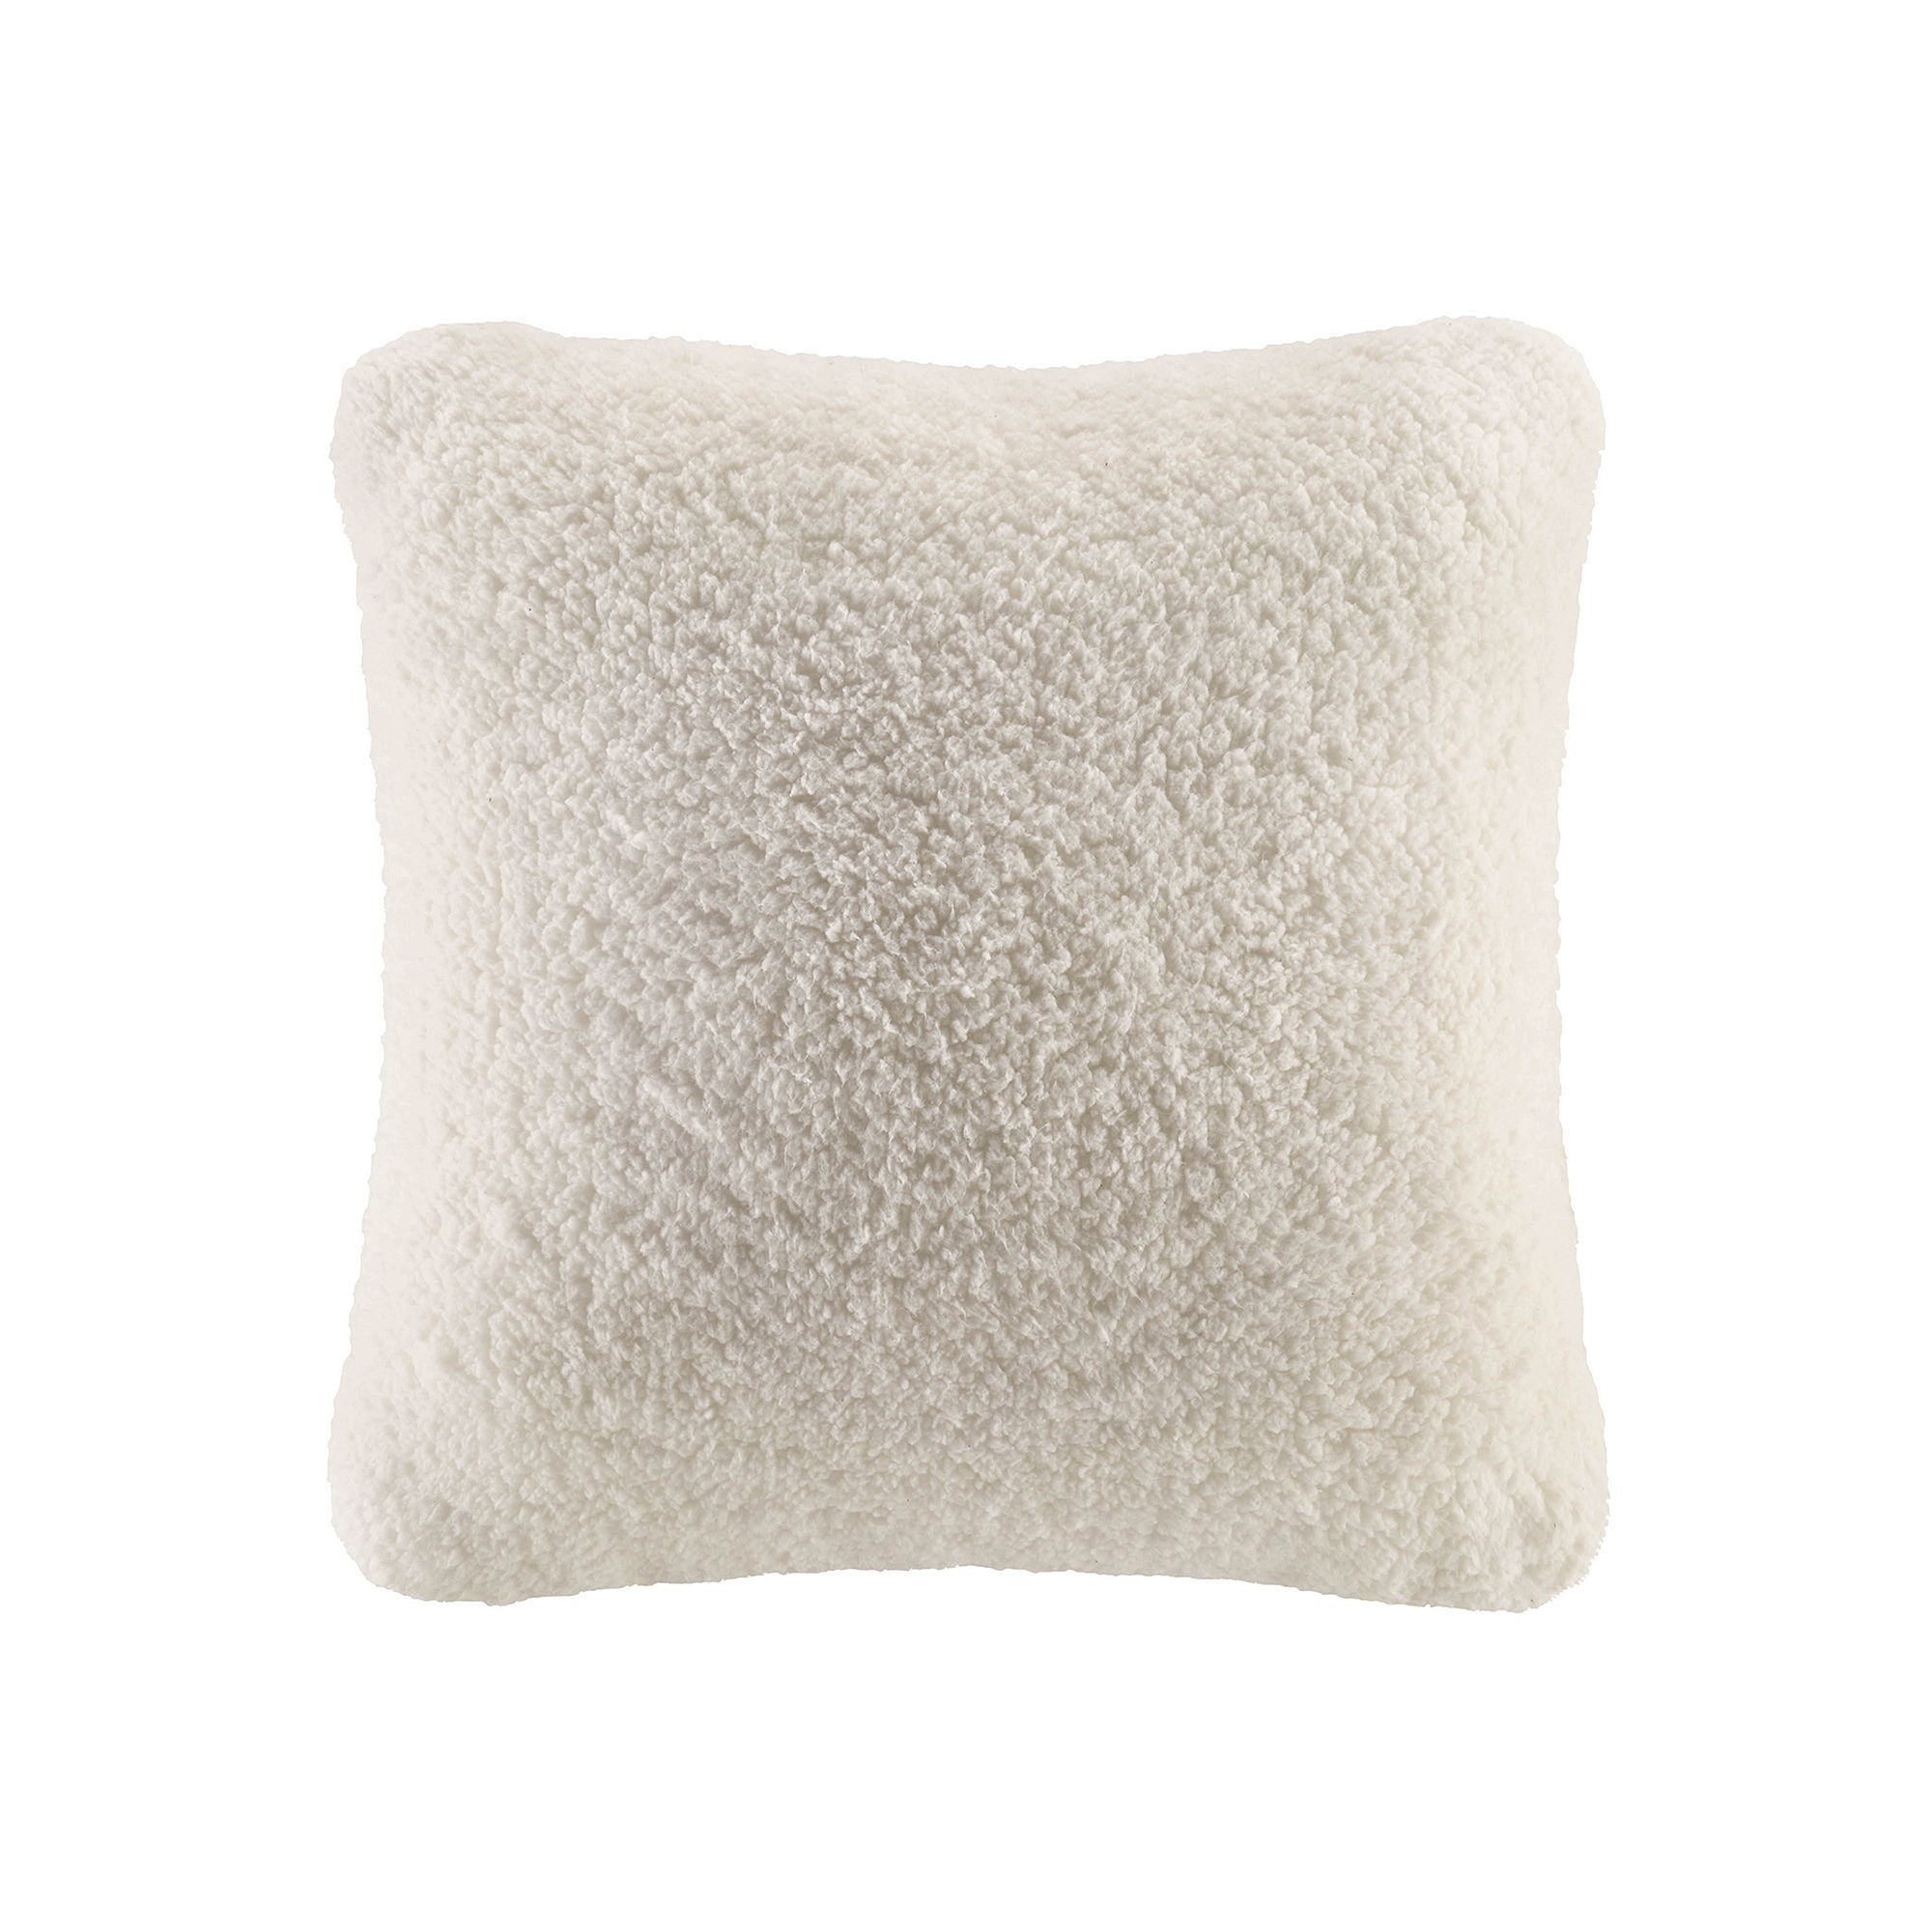 Cuddl Duds Sherpa Fleece Oversized Throw Pillow, White Oth